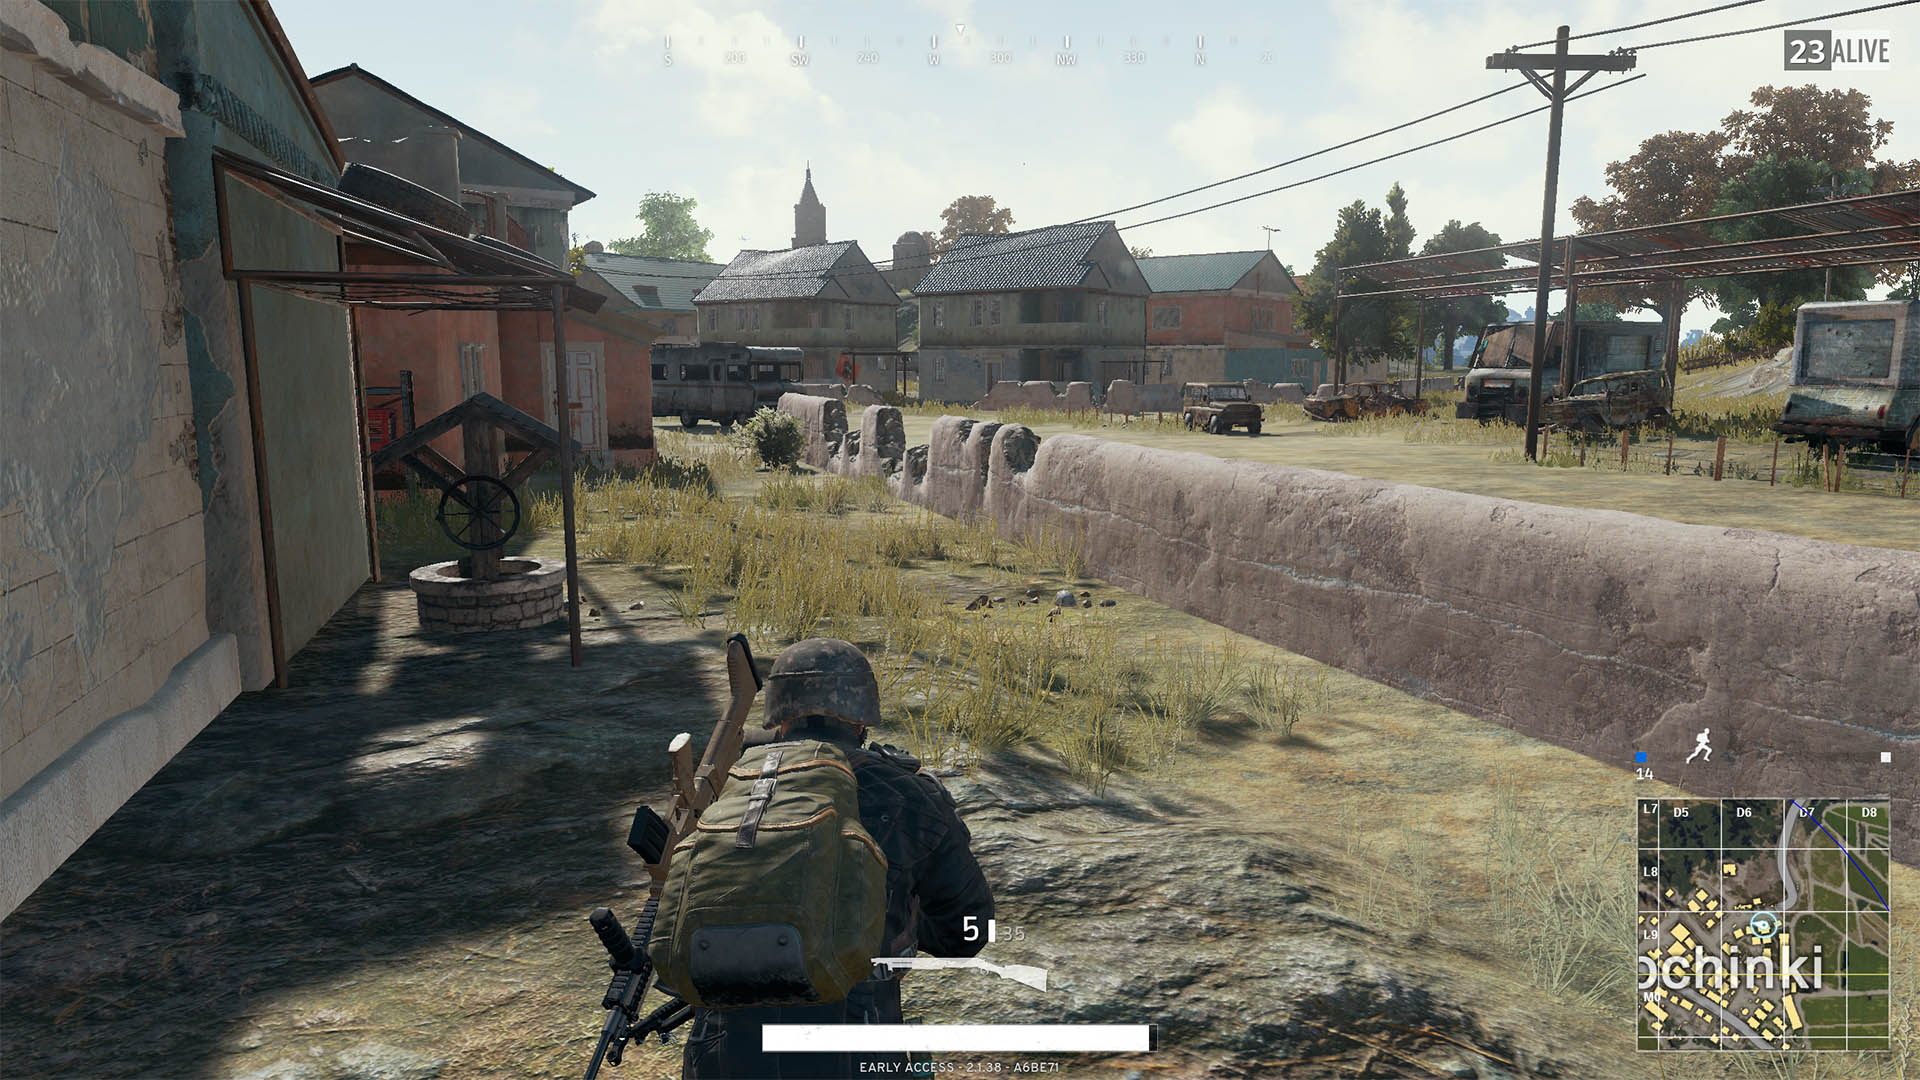 Playerunknown S Battlegrounds Video Game: Tips For Playing PlayerUnknown's Battlegrounds